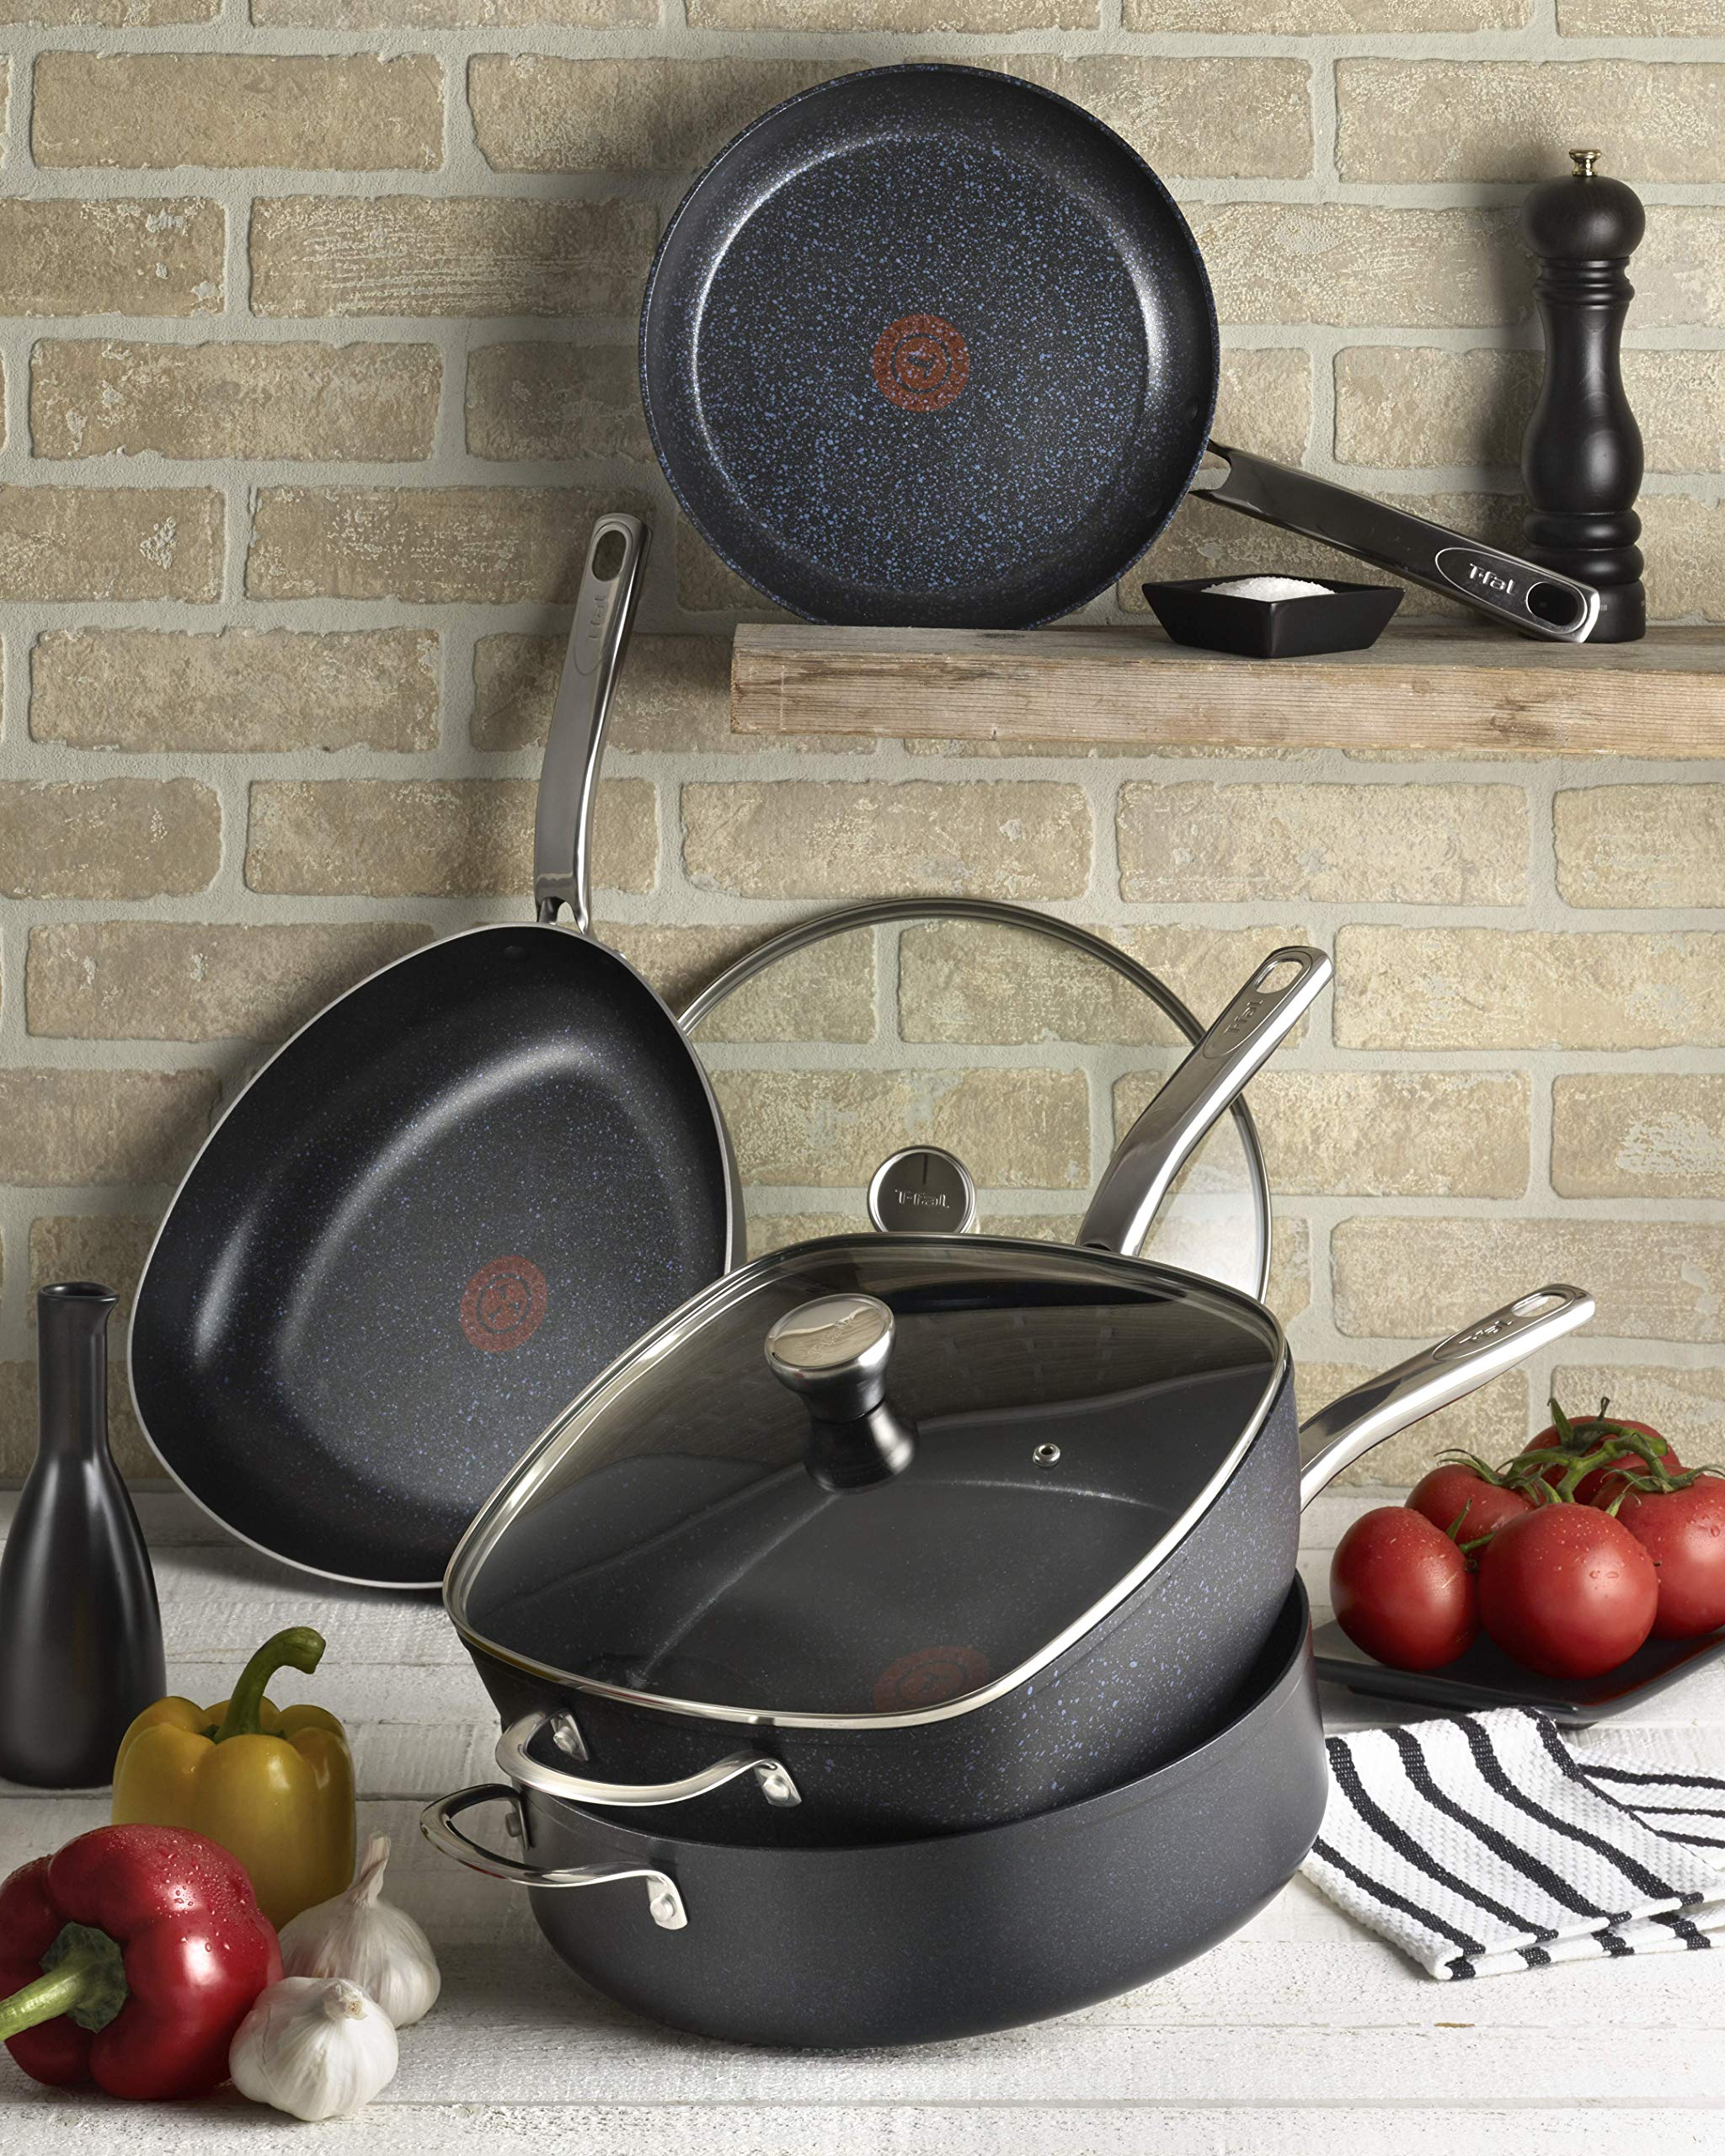 T-fal G10405 Heatmaster Nonstick Thermo-Spot Heat Indicator Fry Pan Cookware, 10-Inch, Black - As Seen on TV by T-fal (Image #5)